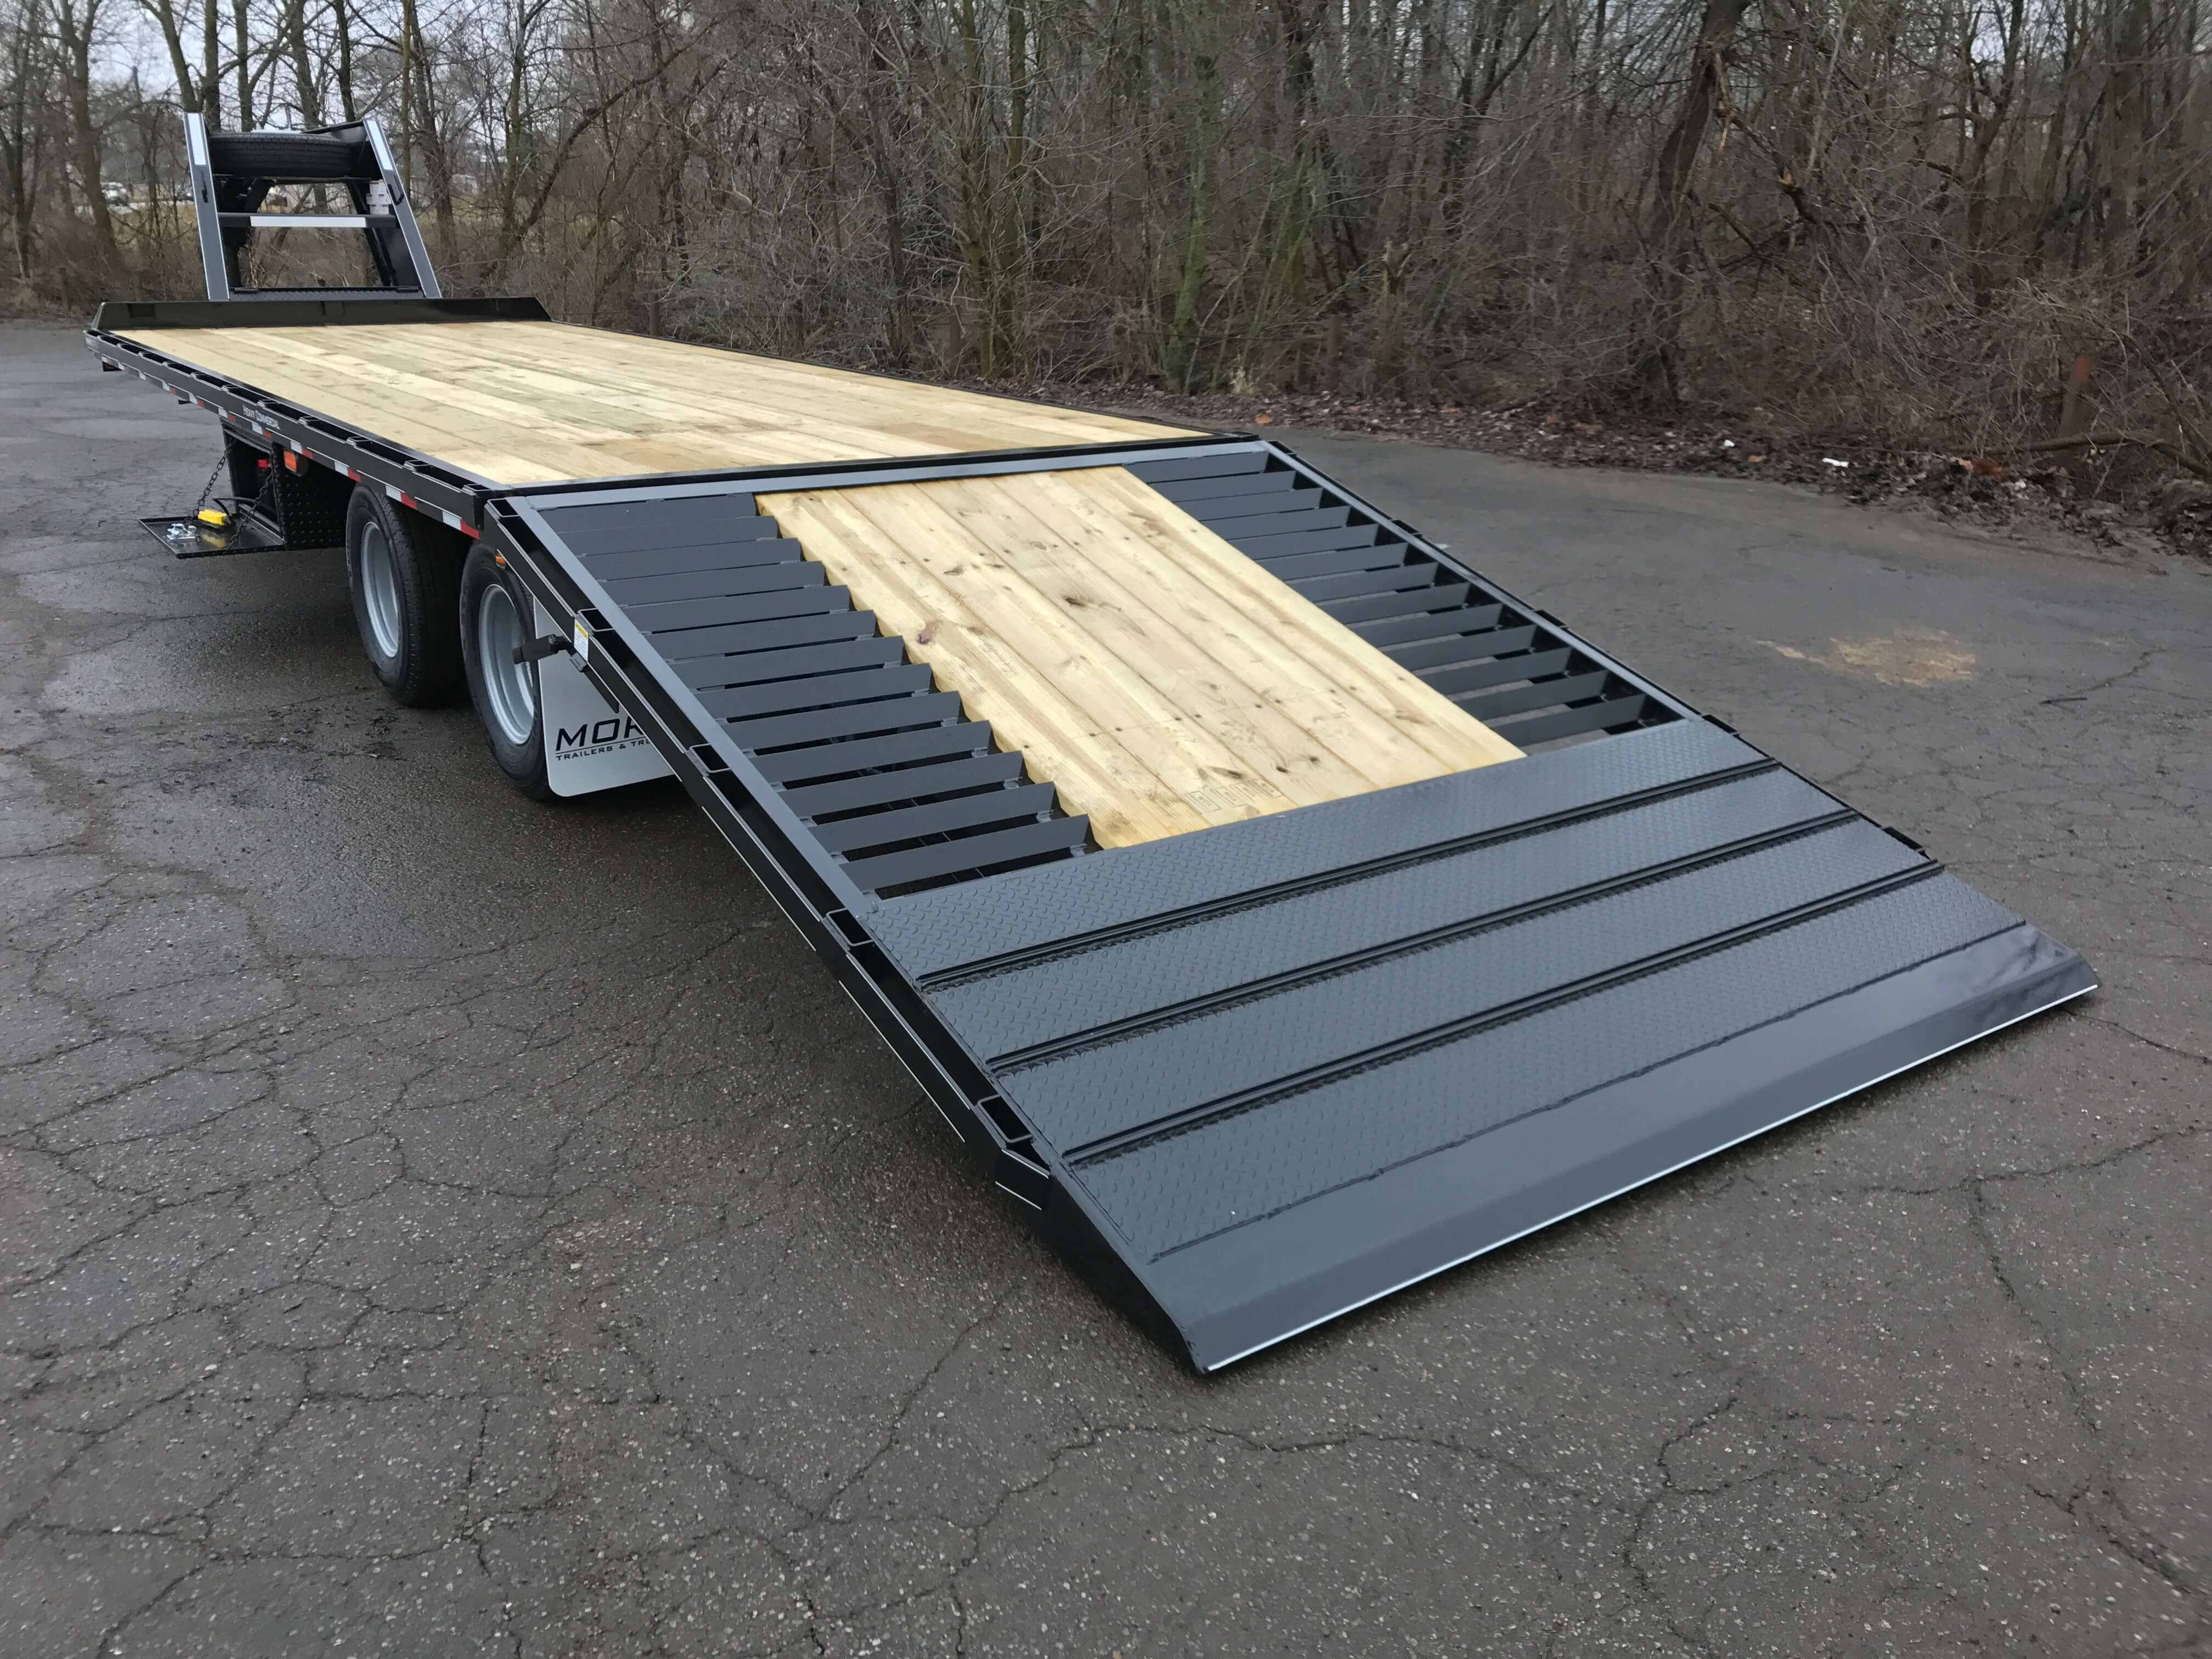 Outstanding barrett trailer wiring diagram gift wiring diagram old fashioned moritz trailer wiring diagram composition everything cheapraybanclubmaster Image collections